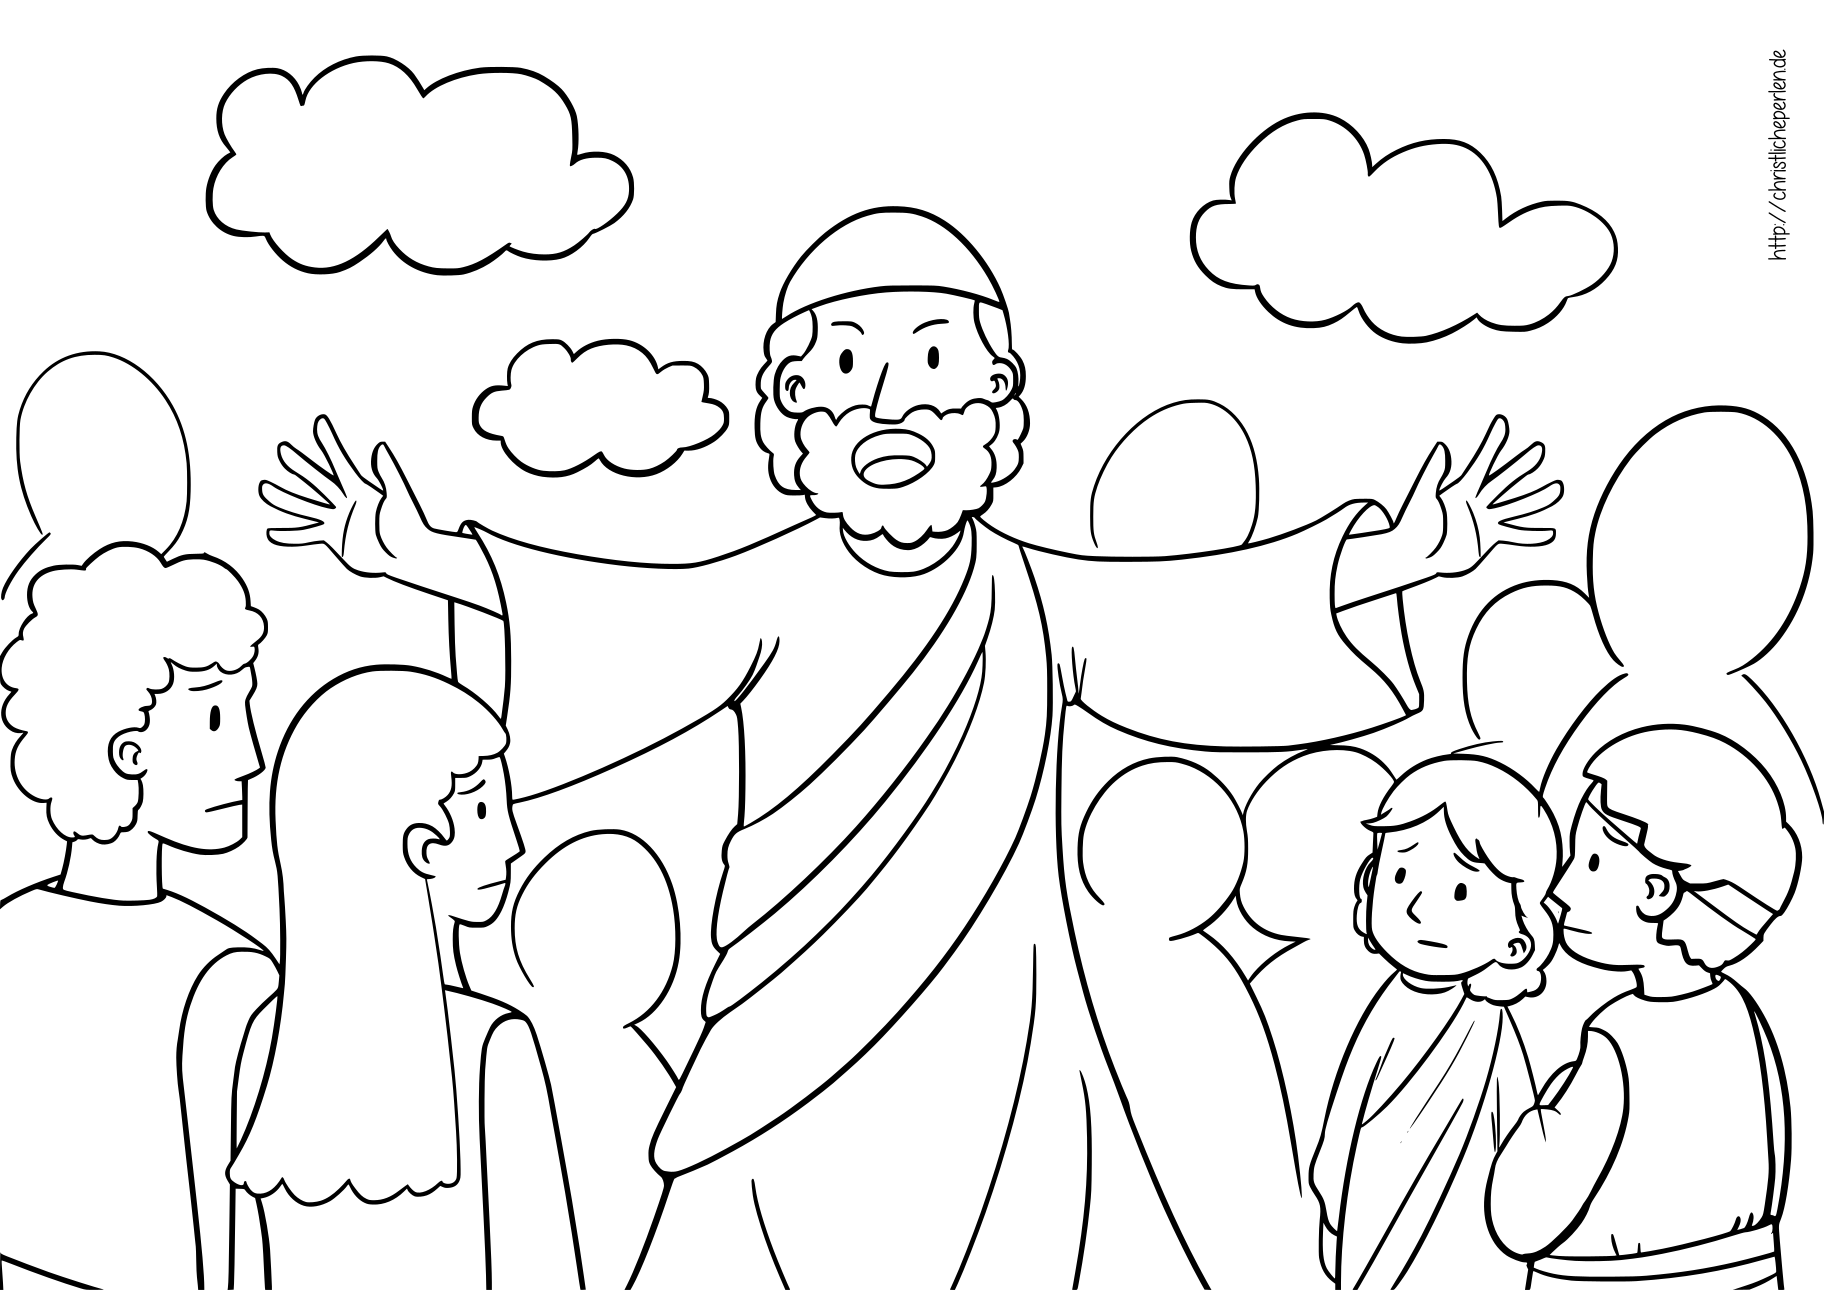 Mose Teilt Das Meer Ausmalbilder Crossing The Sea Coloring Pages